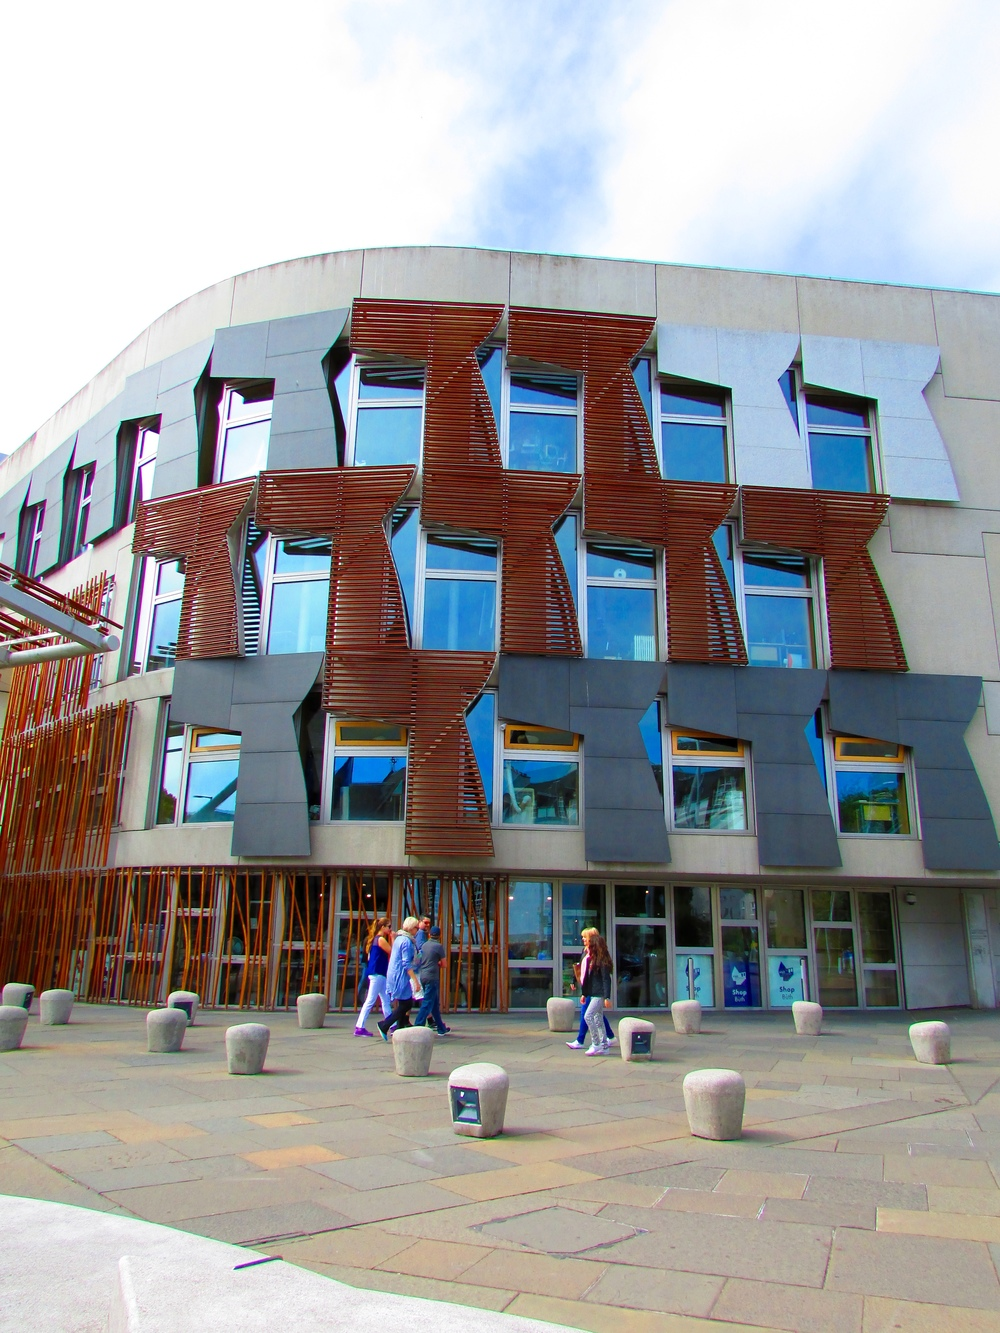 A portion of the Scottish Parliament Building